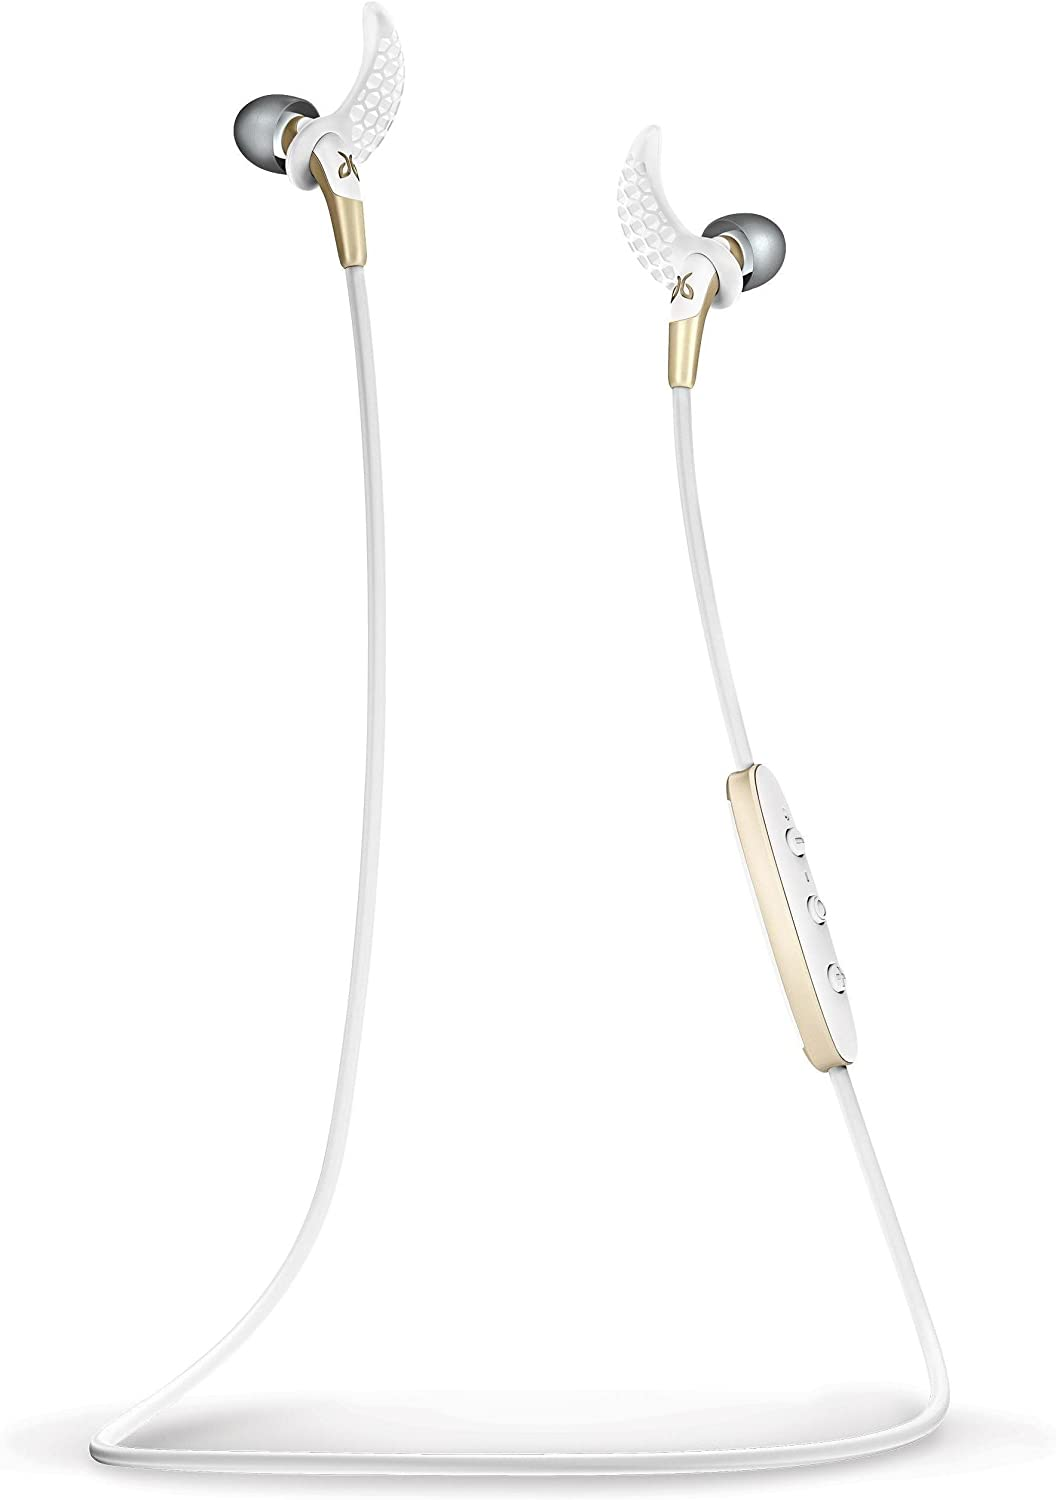 Jaybird Freedom F5 In-Ear Wireless Bluetooth Sports Headphones – Secure Sports Fit – Tough All-Metal Design – Gold